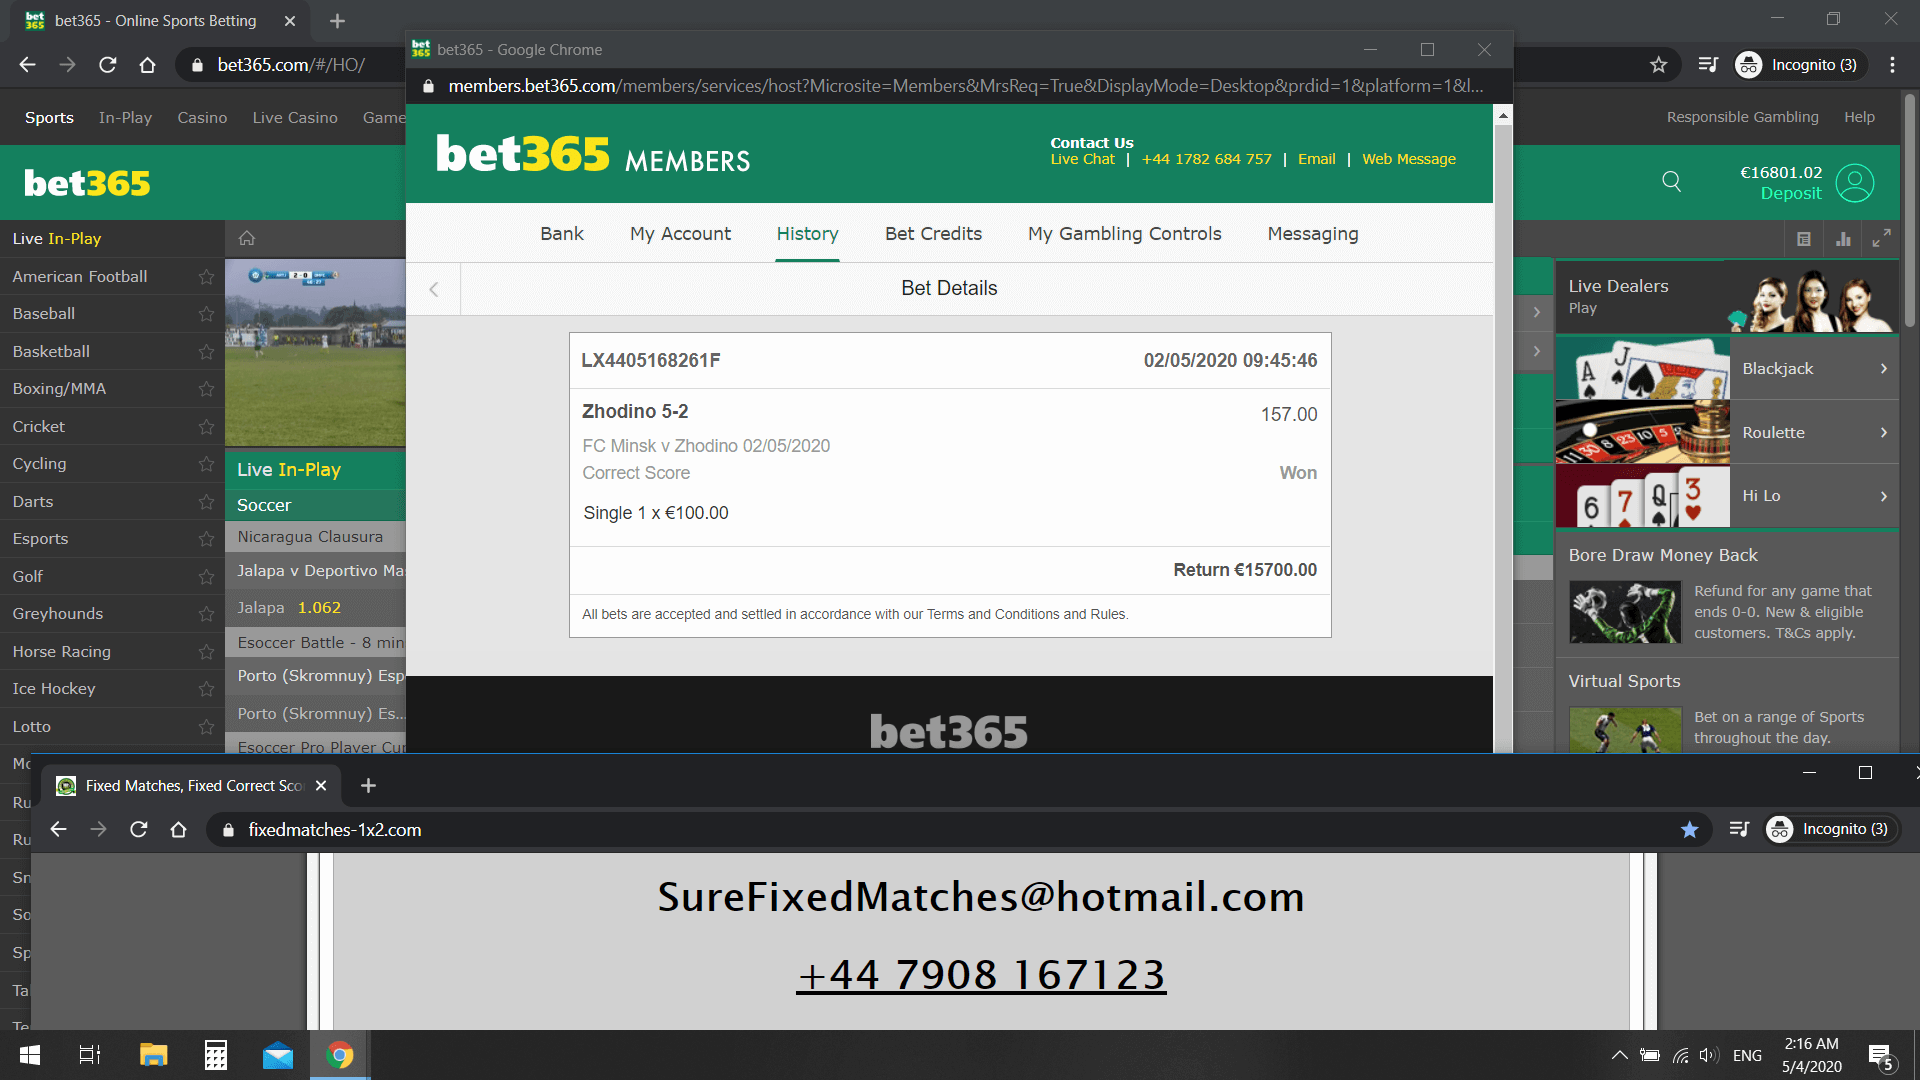 BUY FIXED MATCHES 1X2 PROOF